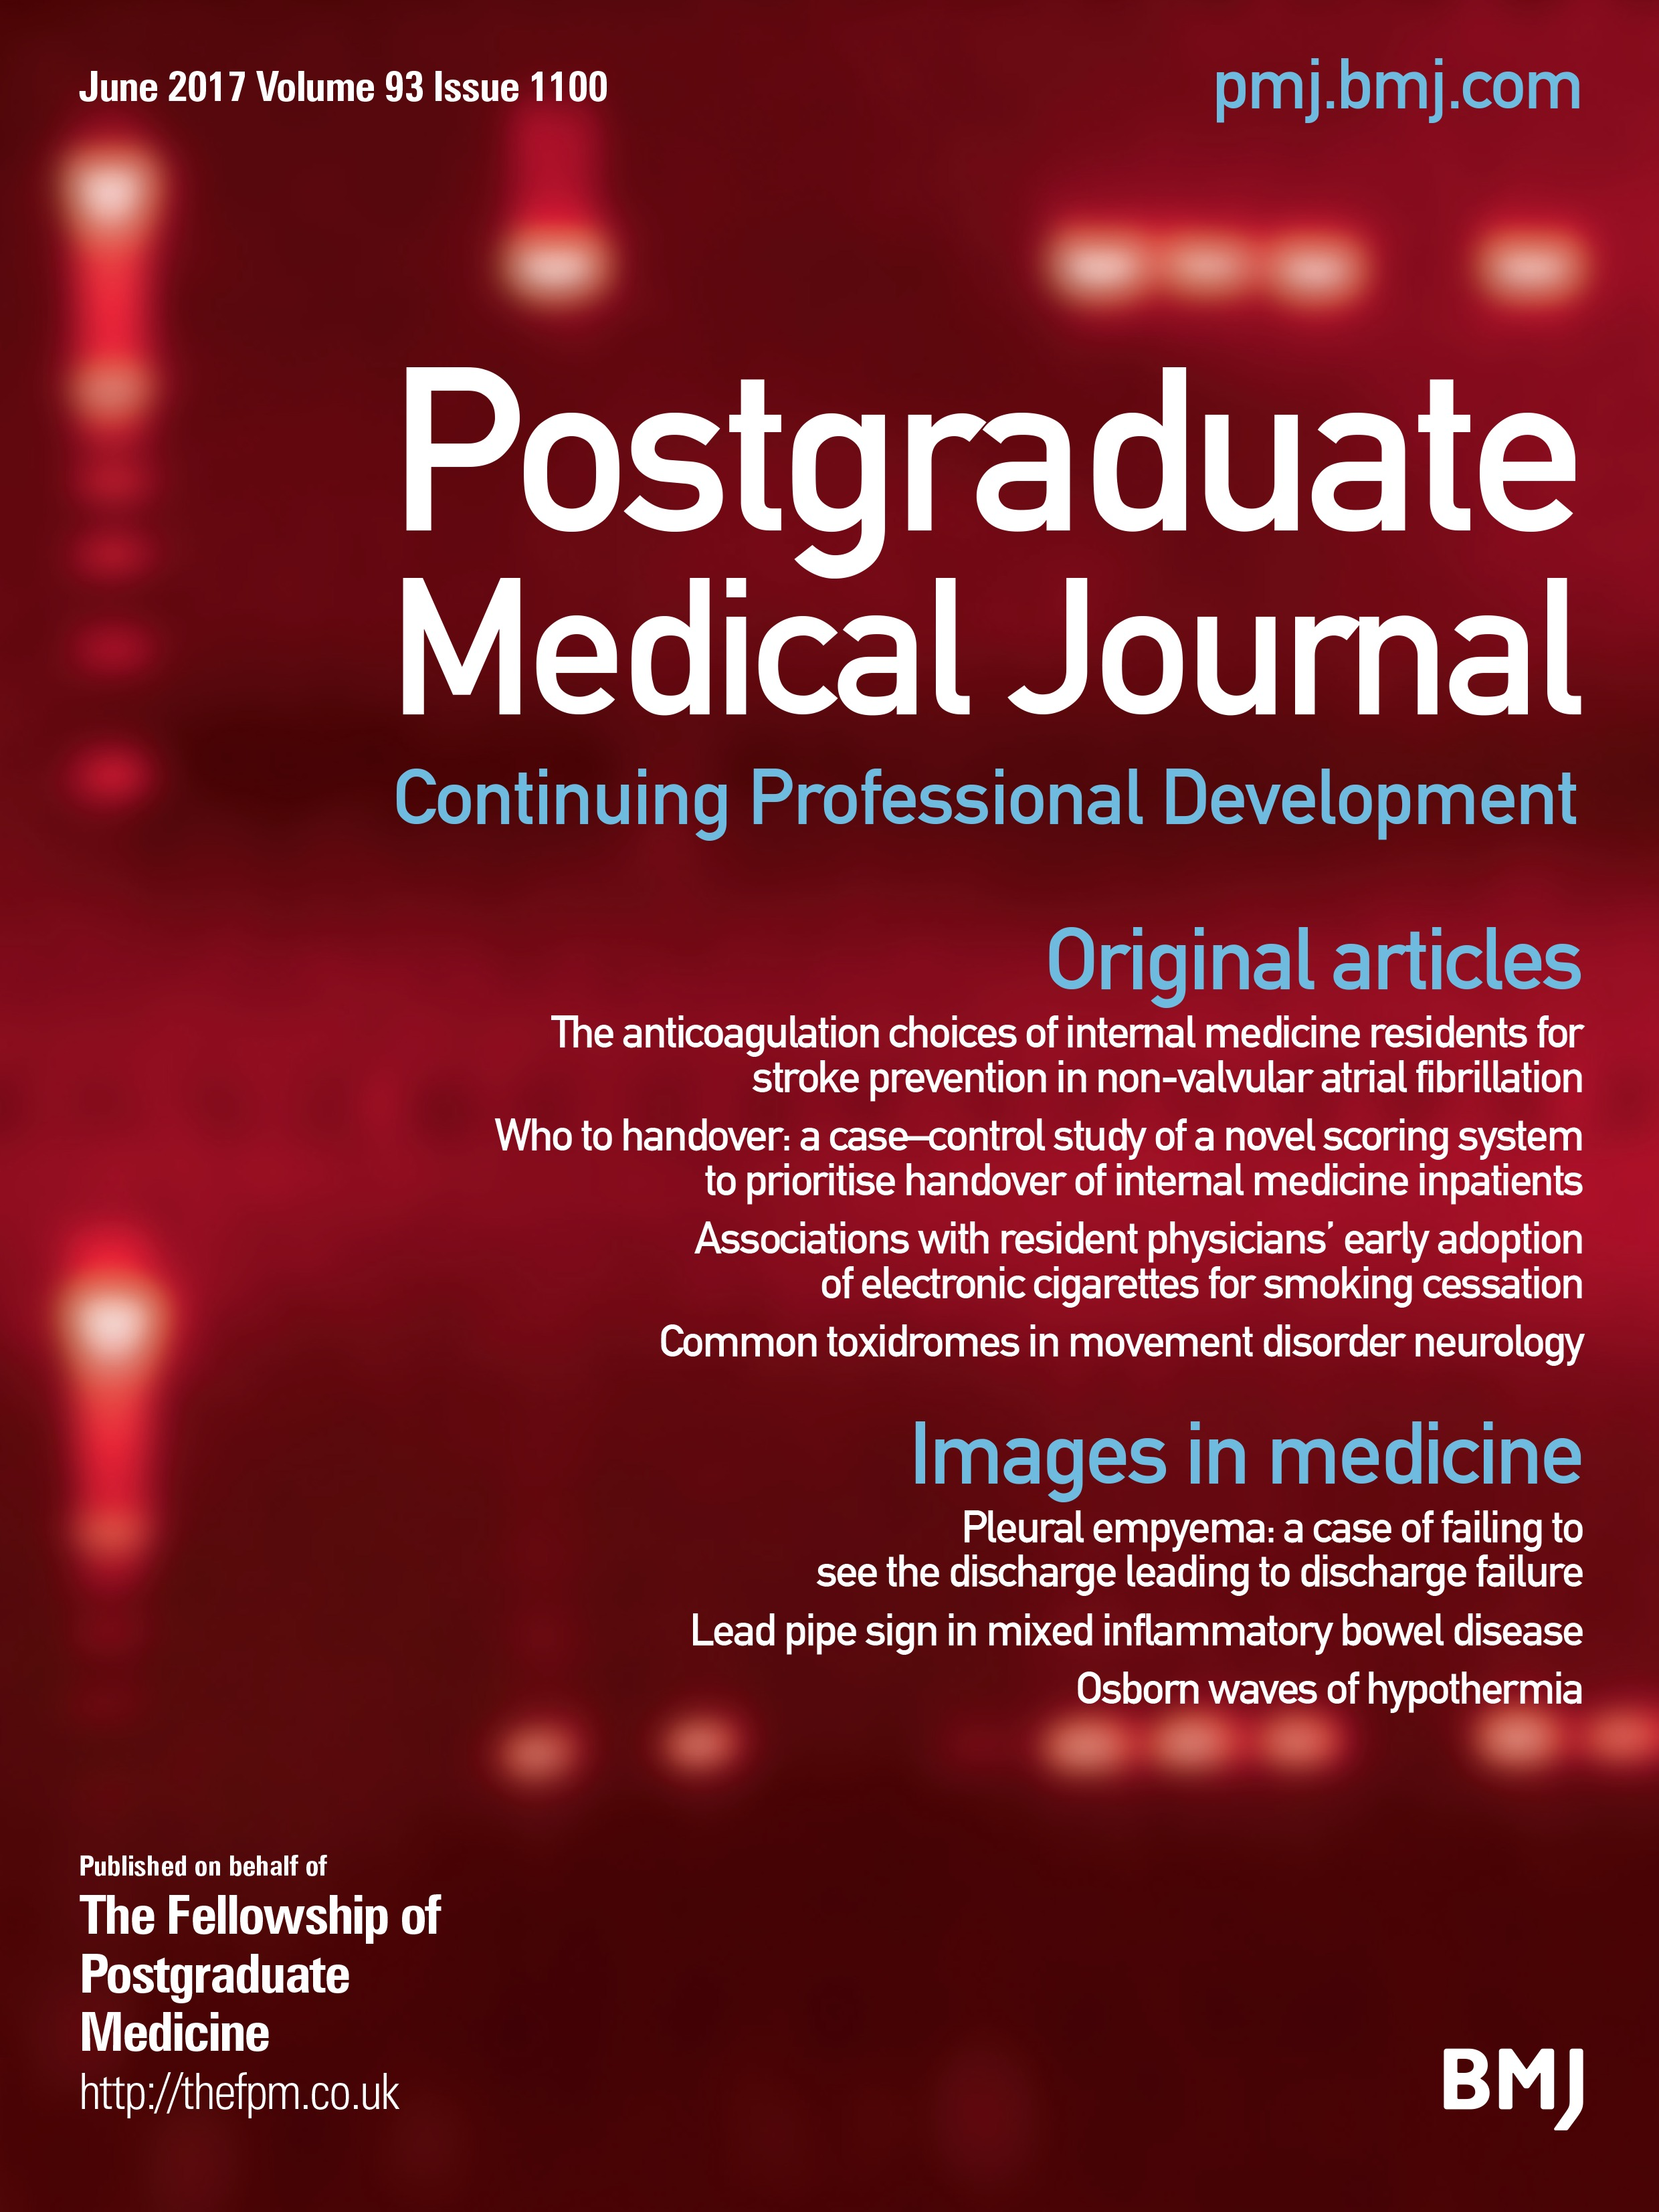 Chapter 61 medical discharge - Associations With Resident Physicians Early Adoption Of Electronic Cigarettes For Smoking Cessation Postgraduate Medical Journal